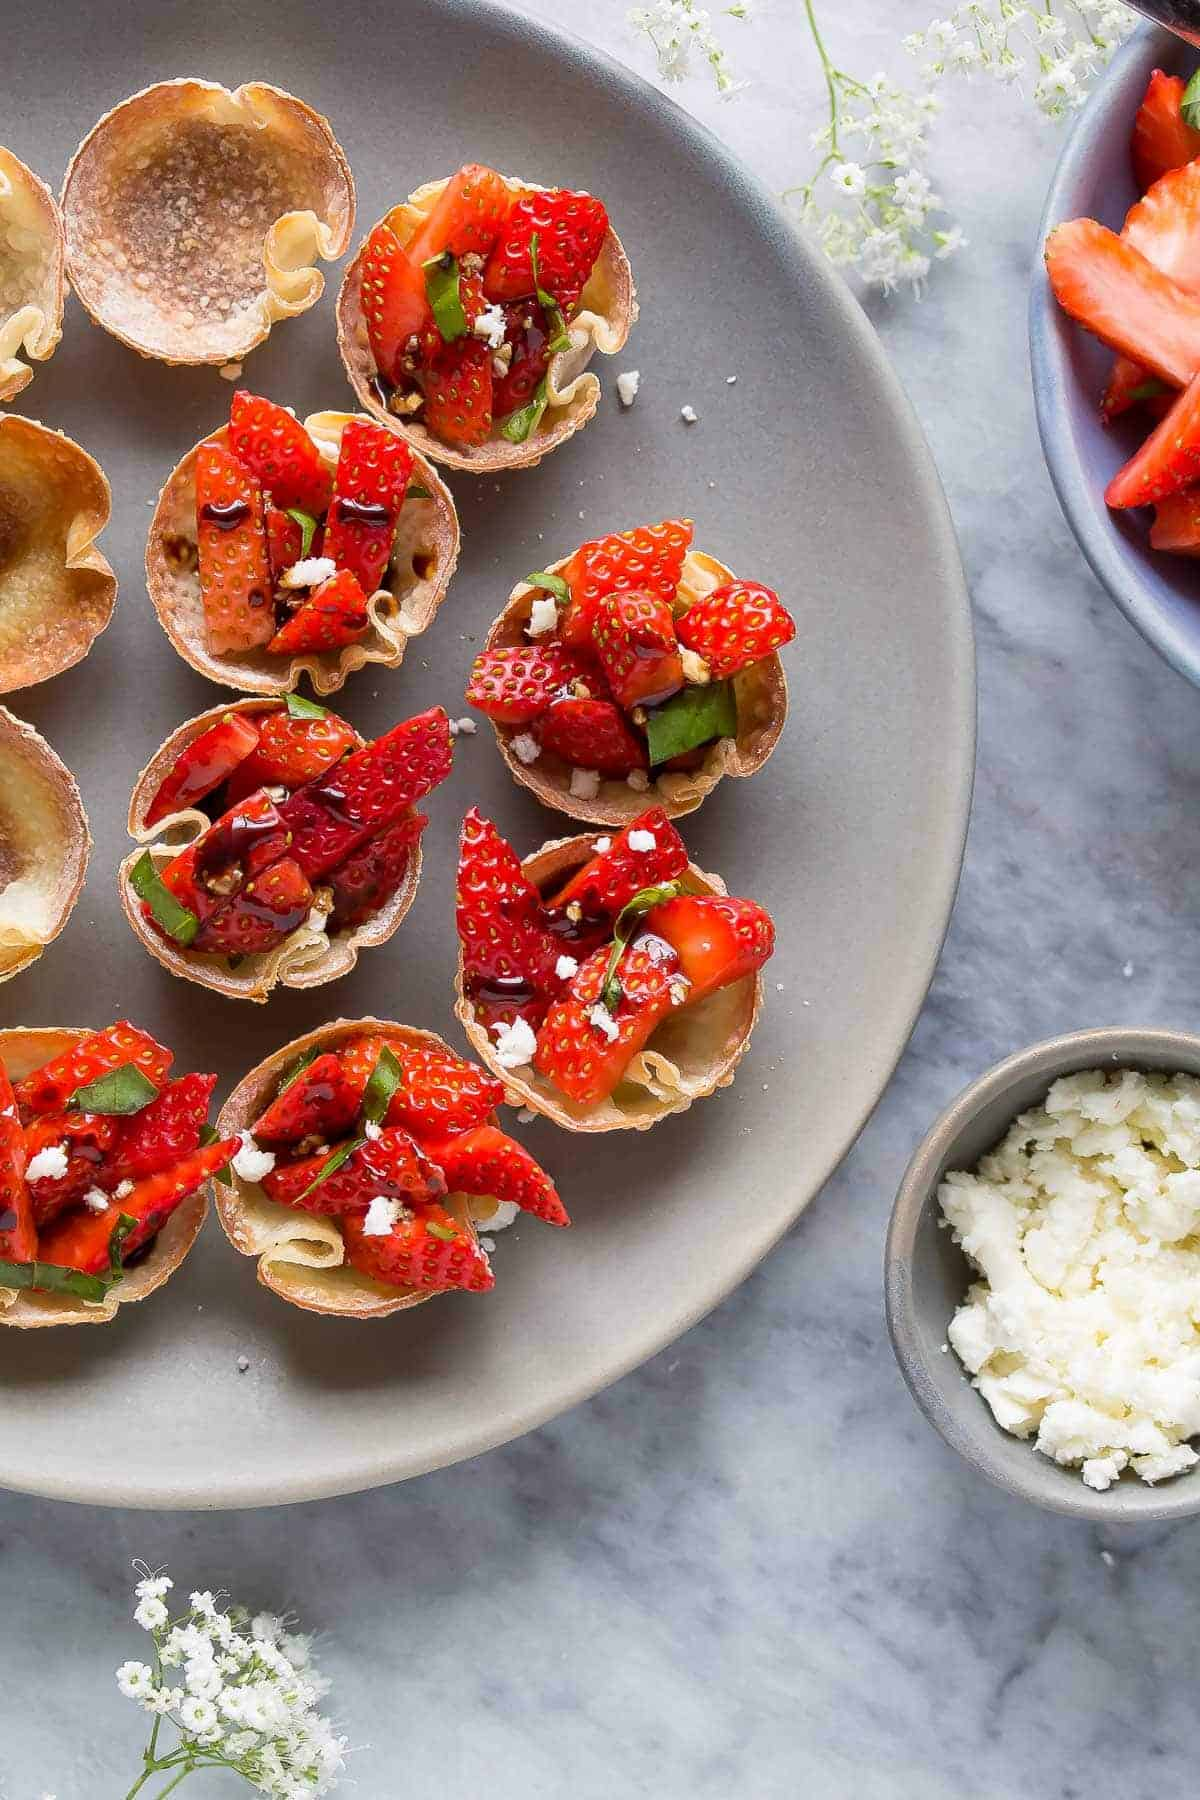 Balsamic Strawberry Bites with Feta and Basil, a lighter make-ahead appetizer option for a party or shower!